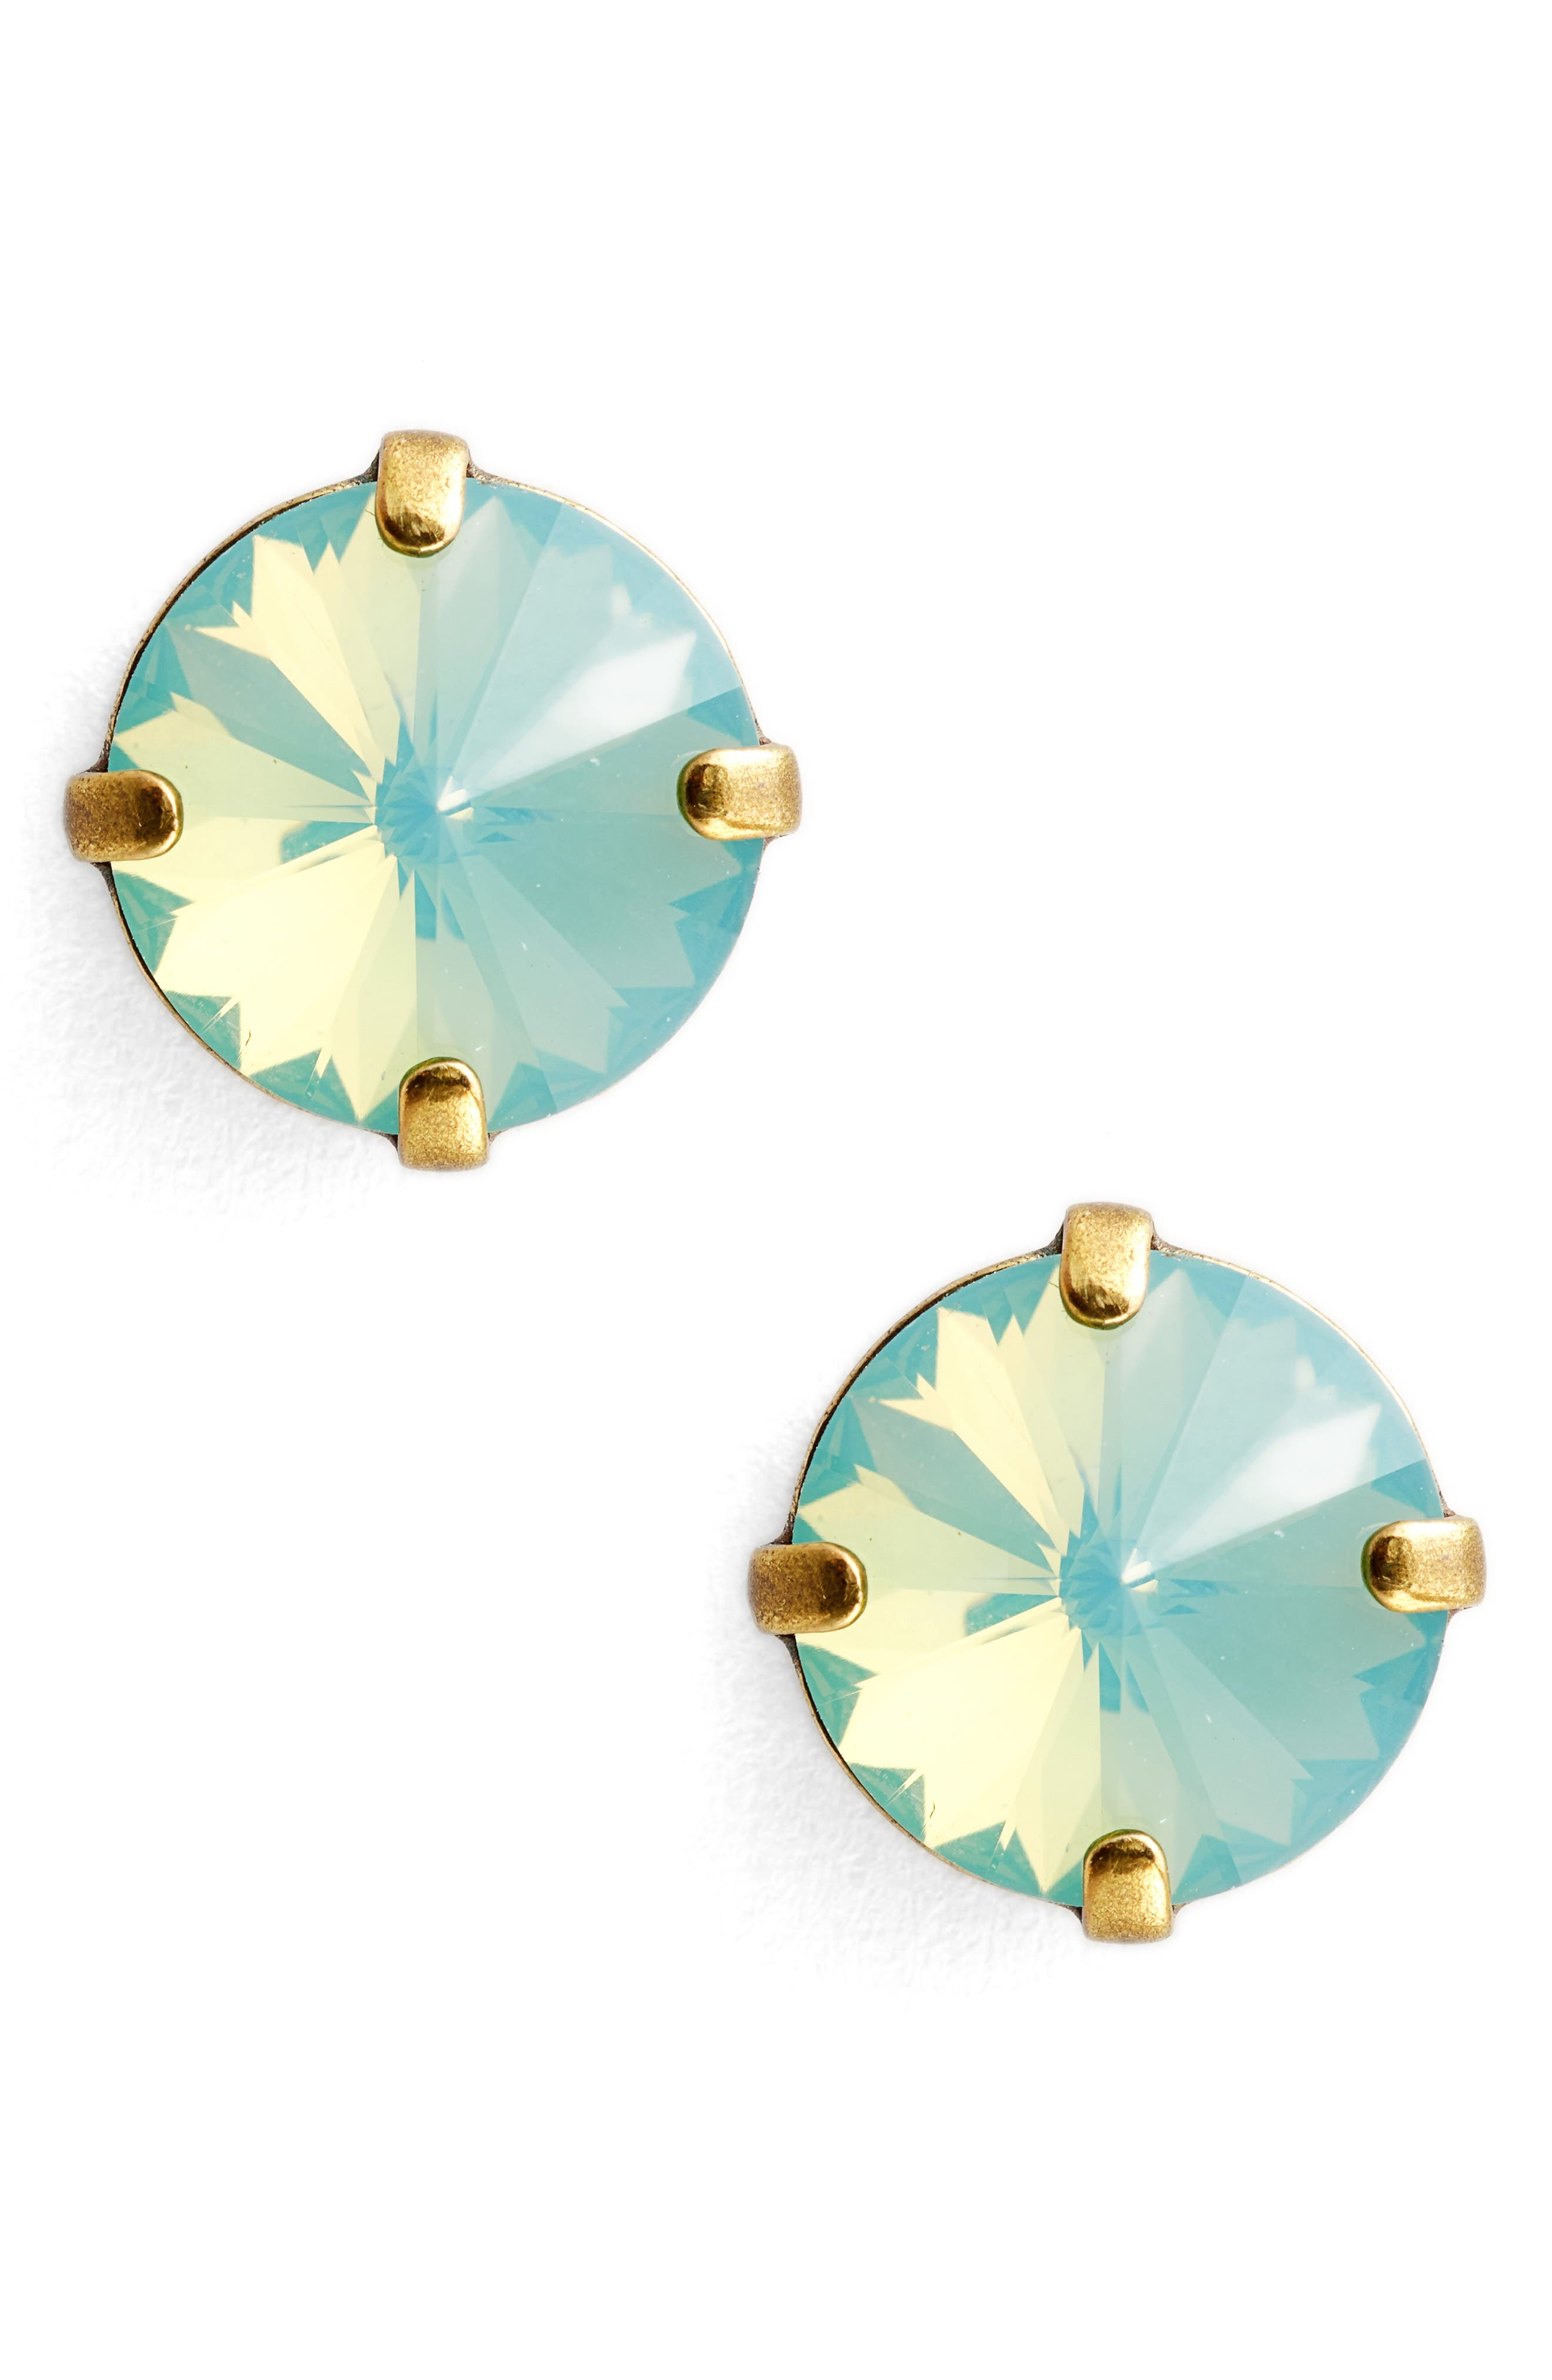 Radiant Rivoli Crystal Earrings,                         Main,                         color, BLUE-GREEN/ GOLD